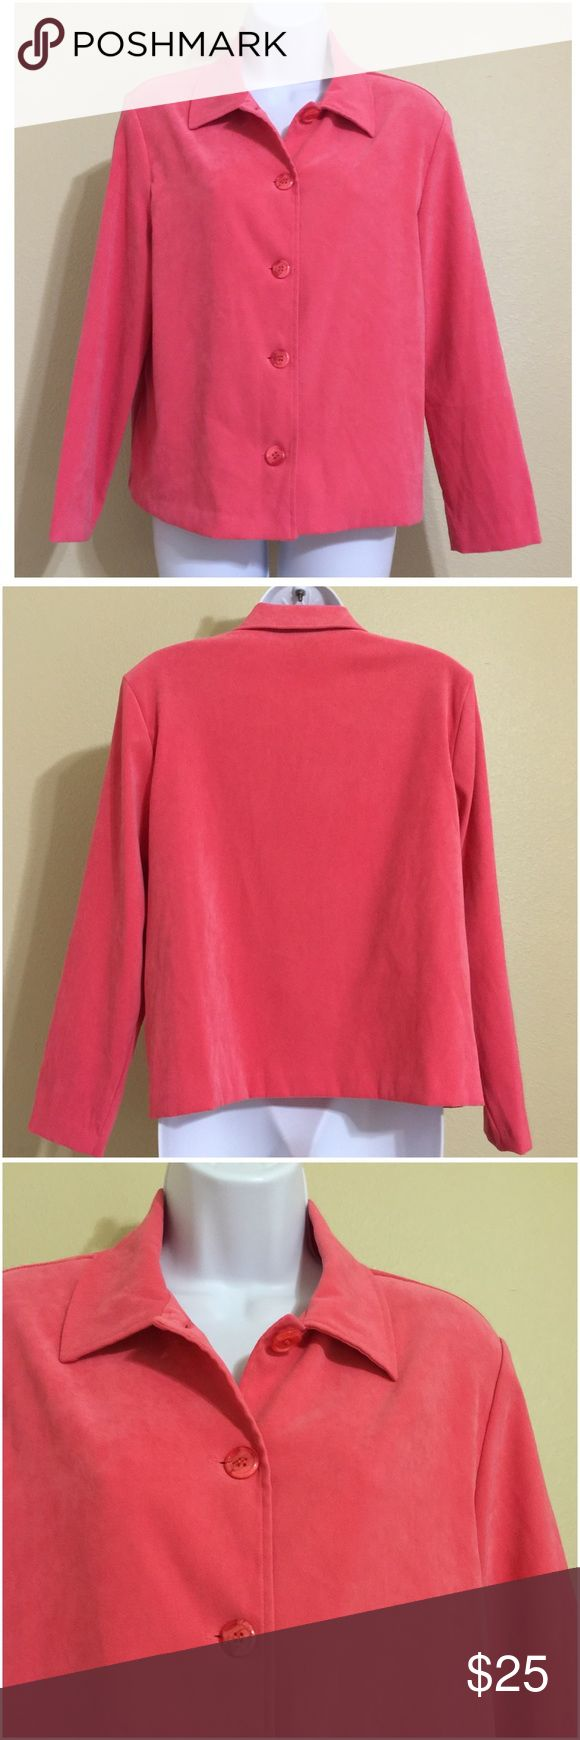 "Briggs Petite Blazer Jacket Size PM • Coral • Removable Shoulder Pads • Machine Wash • Polyester Spandex Blend • 20"" Pit to Pit • 22"" Length • 17"" Shoulder Width • 21"" Sleeve Seam to Cuff Briggs Jackets & Coats Blazers"